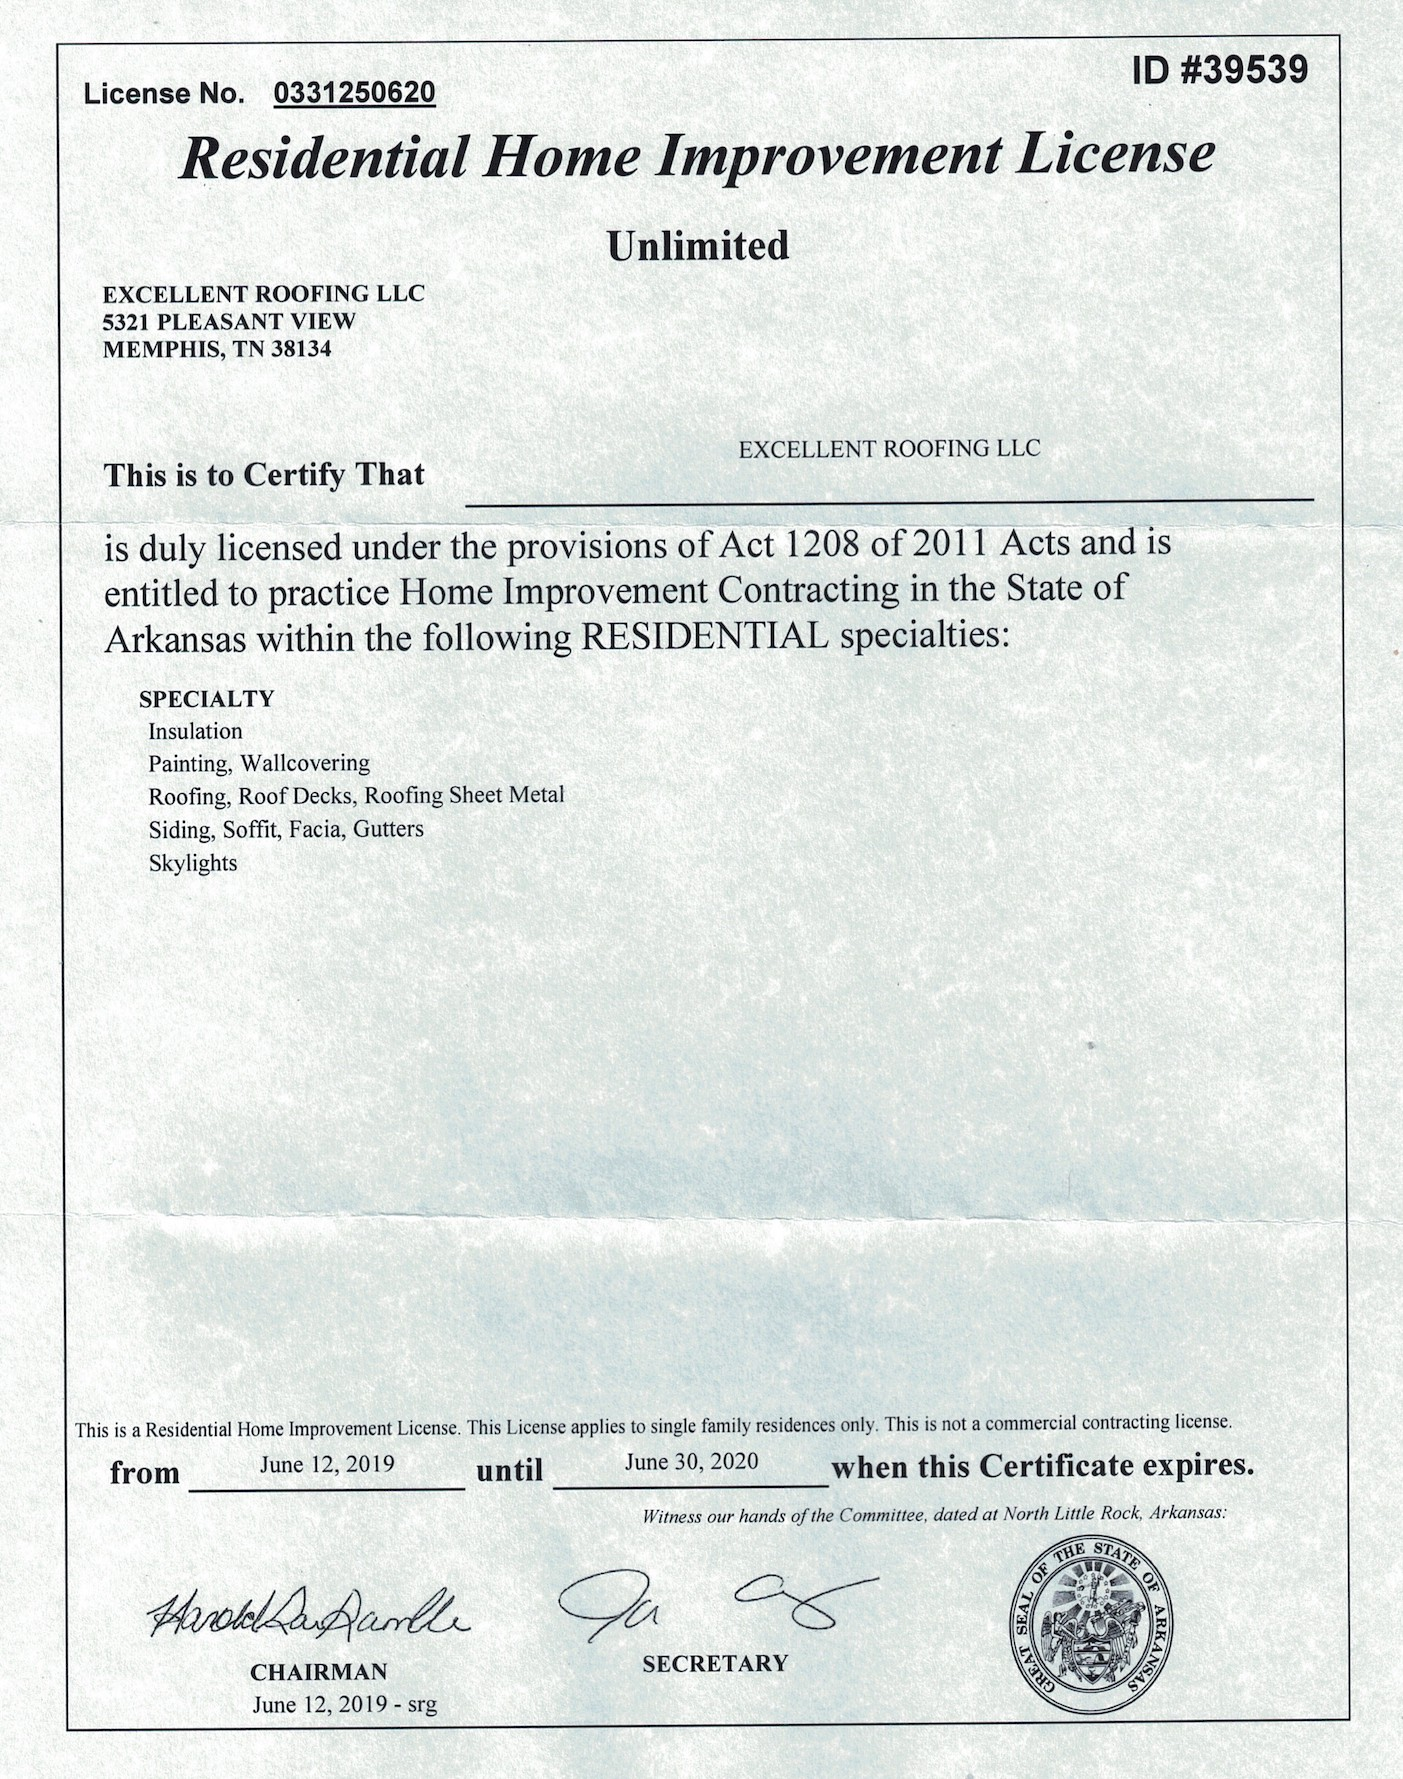 Excellent Roofing Arkansas Biz License 2019